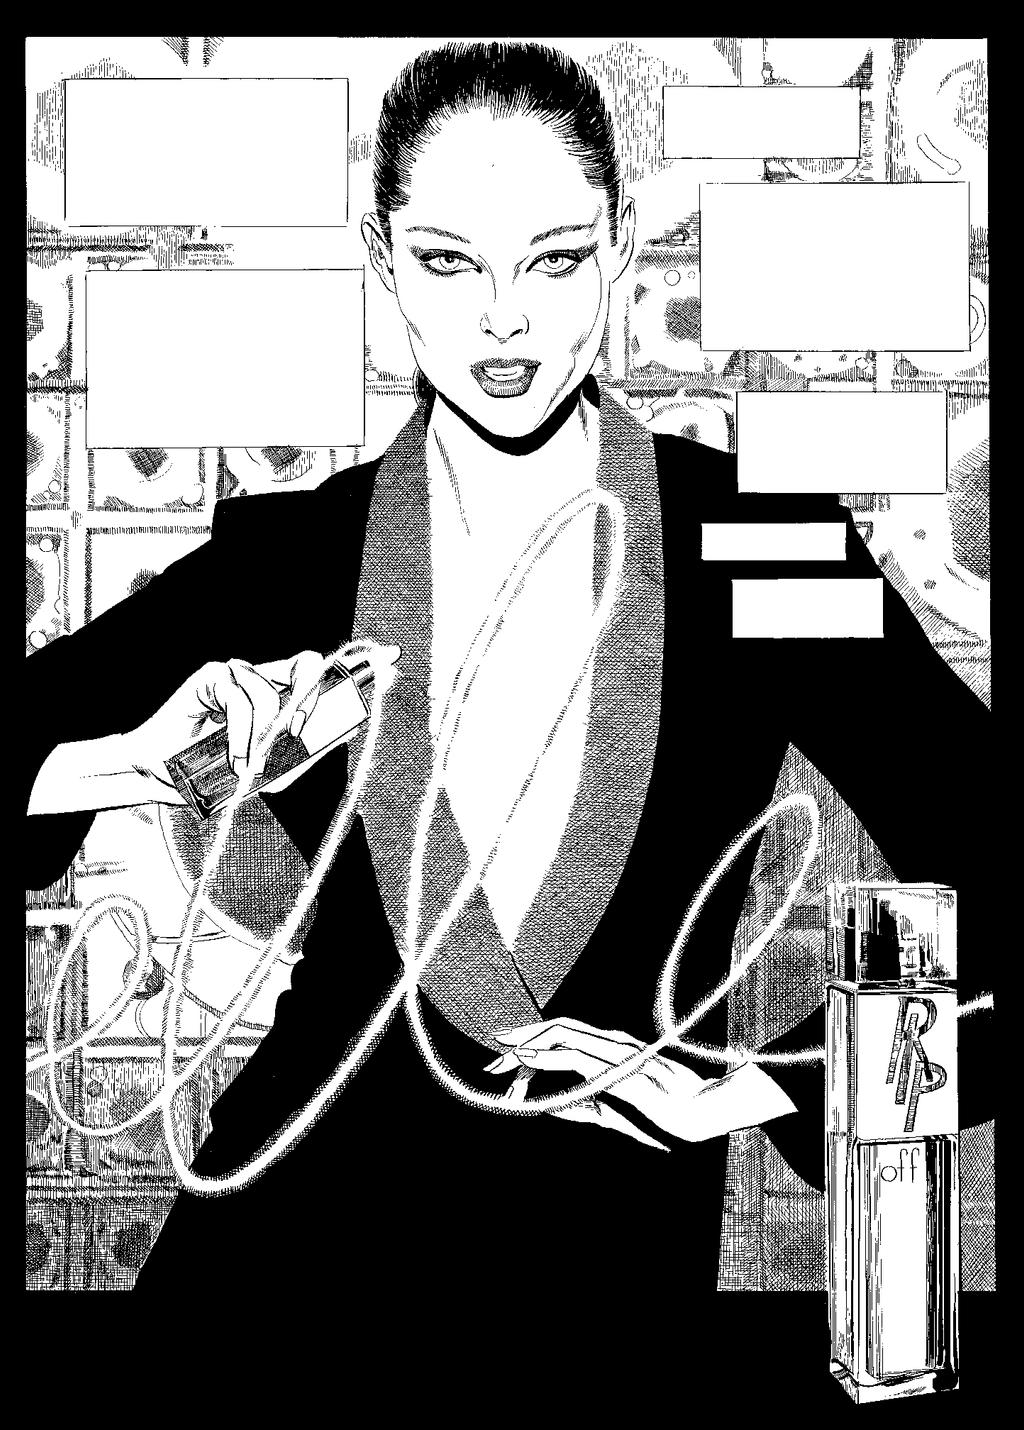 Glamourpuss_Issue_3_preview_3_by_Dave_Sim.jpg